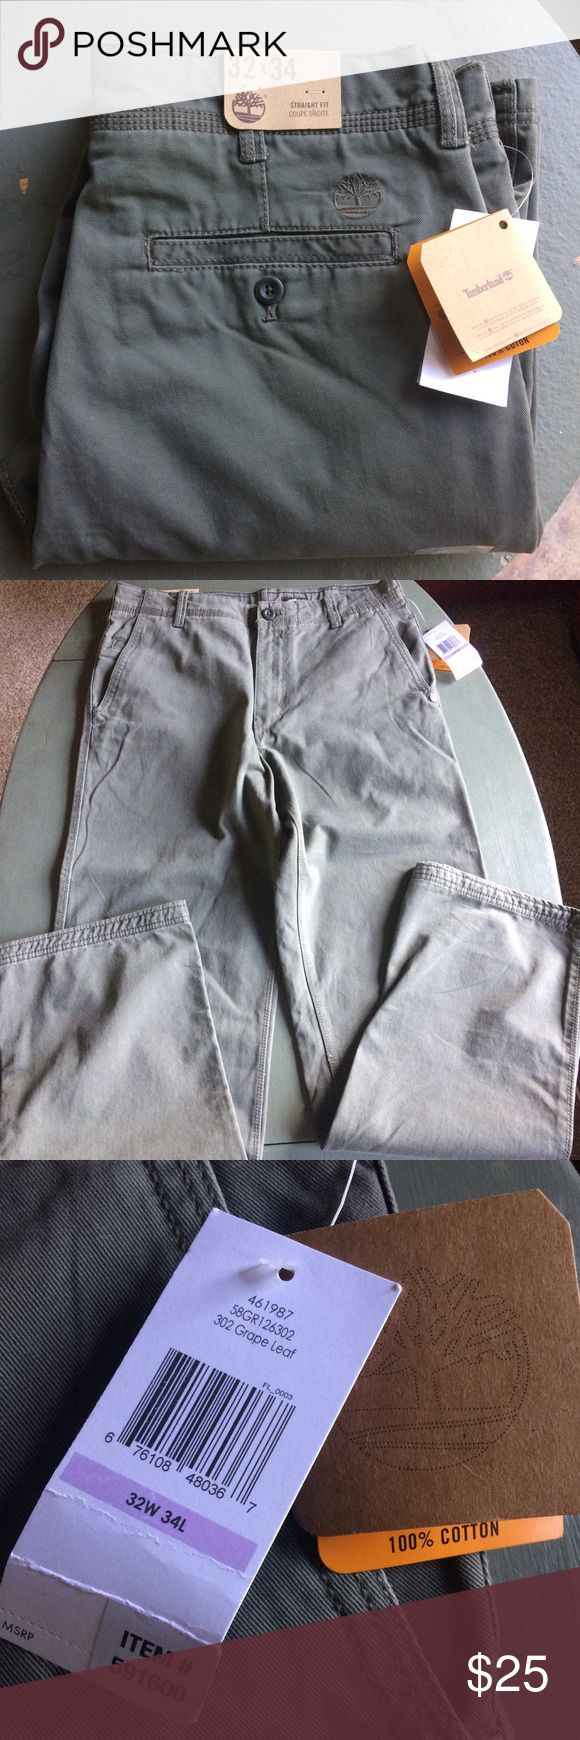 """NEW Timberland Straight Fit Chinos NEW Timberland Straight Fit Chinos in color """"grape leaf"""" or green. Size is 32 x34.measurements laying flat: waist: 16, inseam: 33. Has small bark on back of one leg (shown) Timberland Pants Chinos & Khakis"""